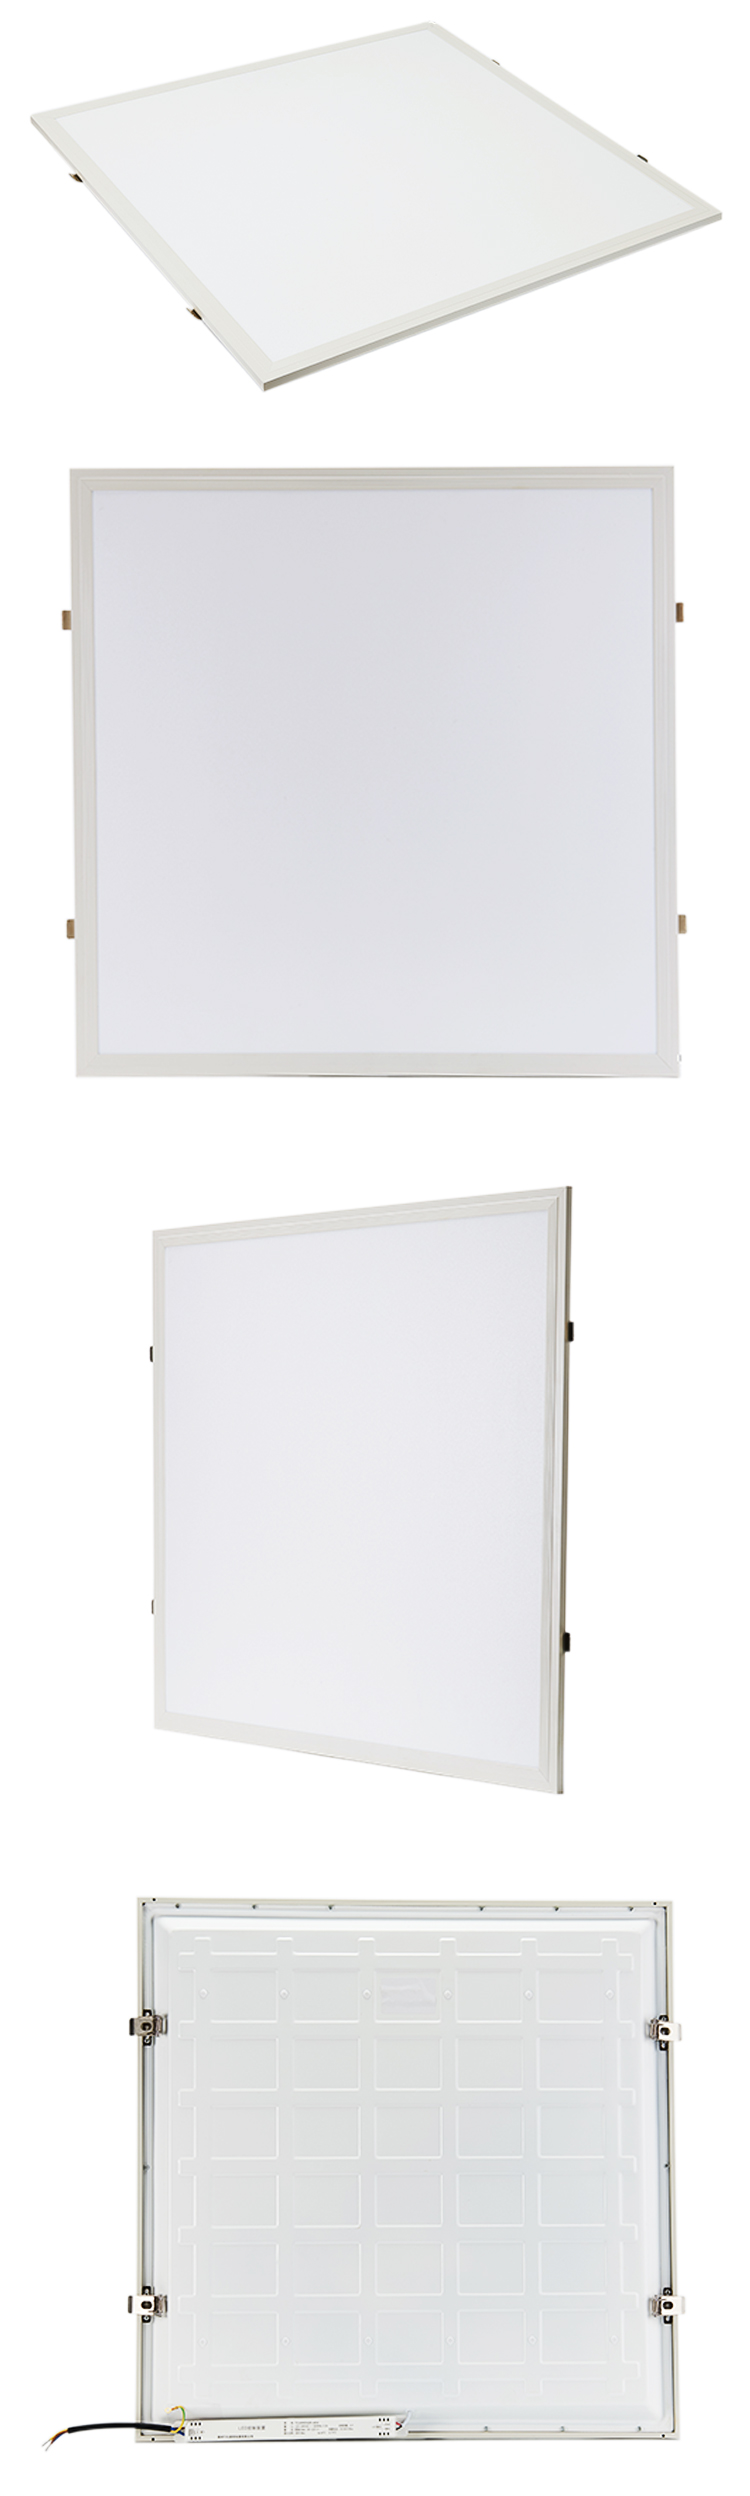 flat panel 6060 led panel SAA BIS CE guangdong 600x600 led panel